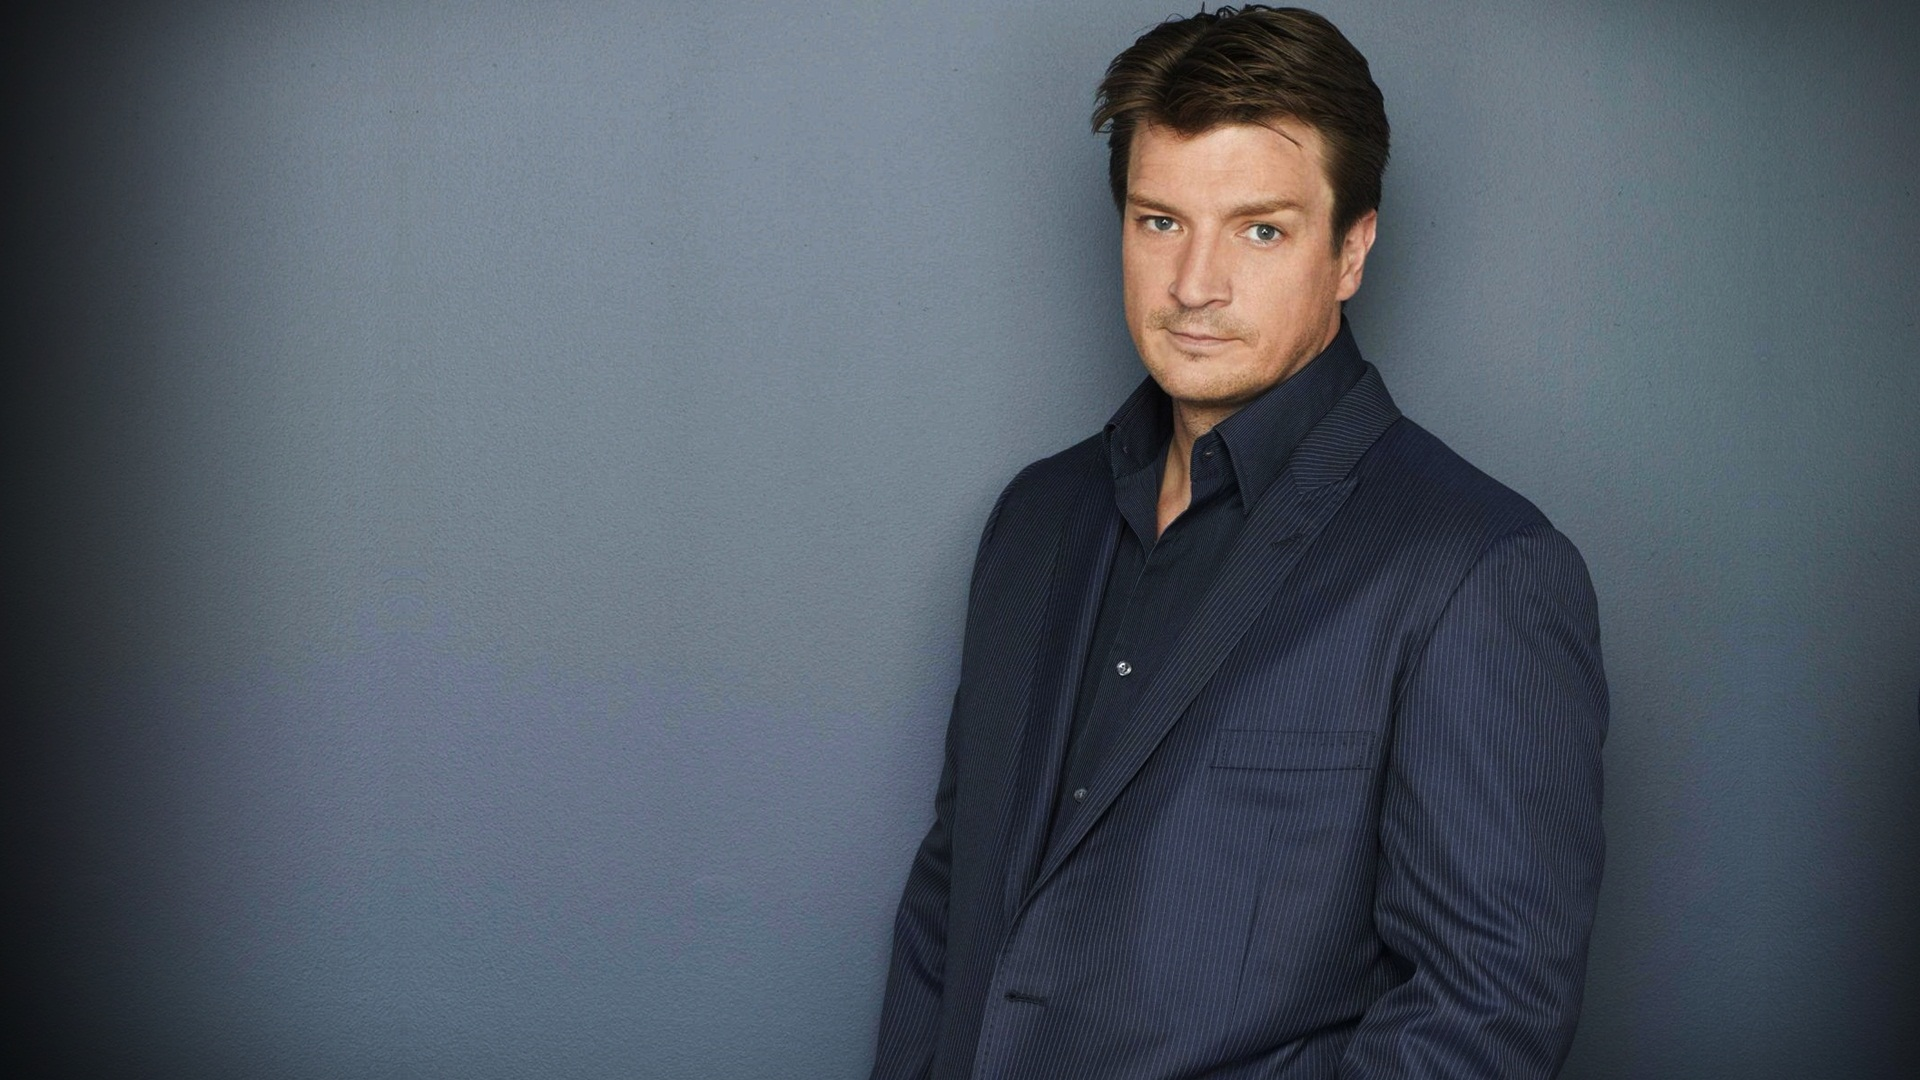 hot-nathan-fillion-wallpapers-men ...